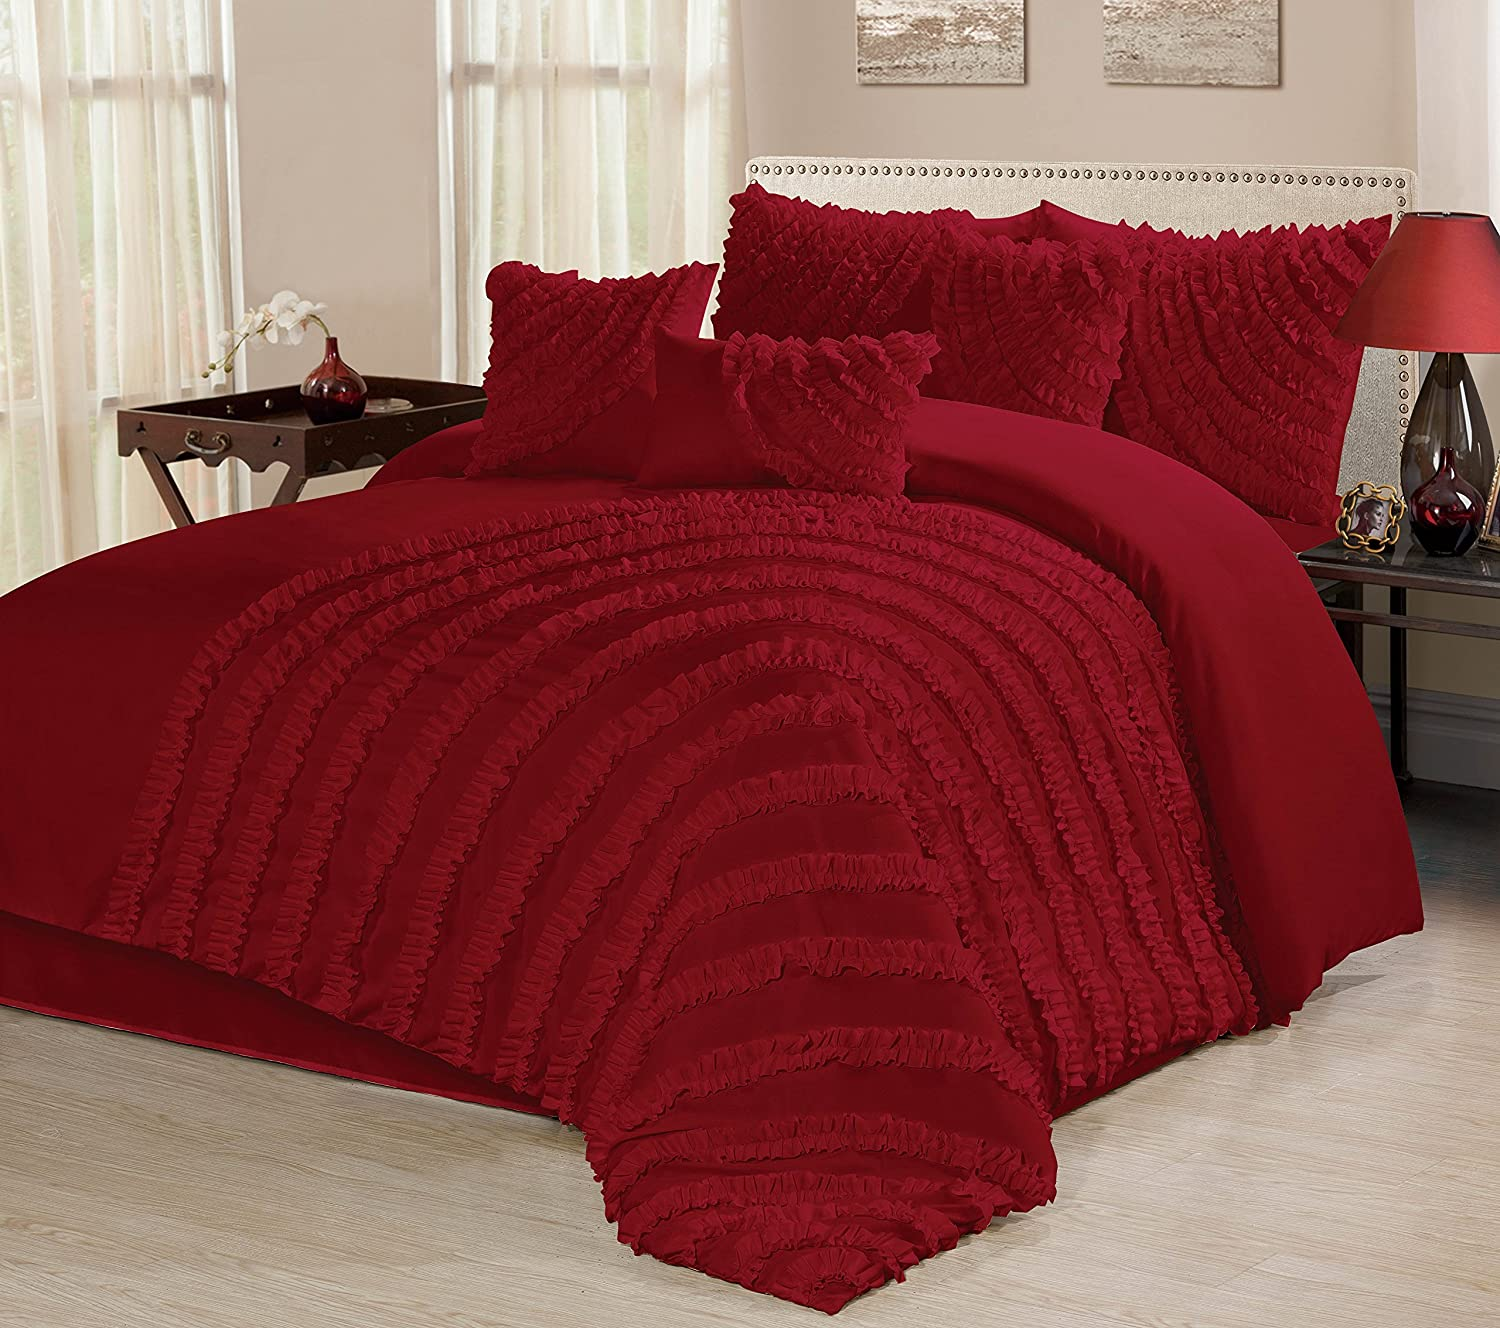 Amazon Com 7 Piece Hillary Bed In A Bag Ruffled Comforter Sets